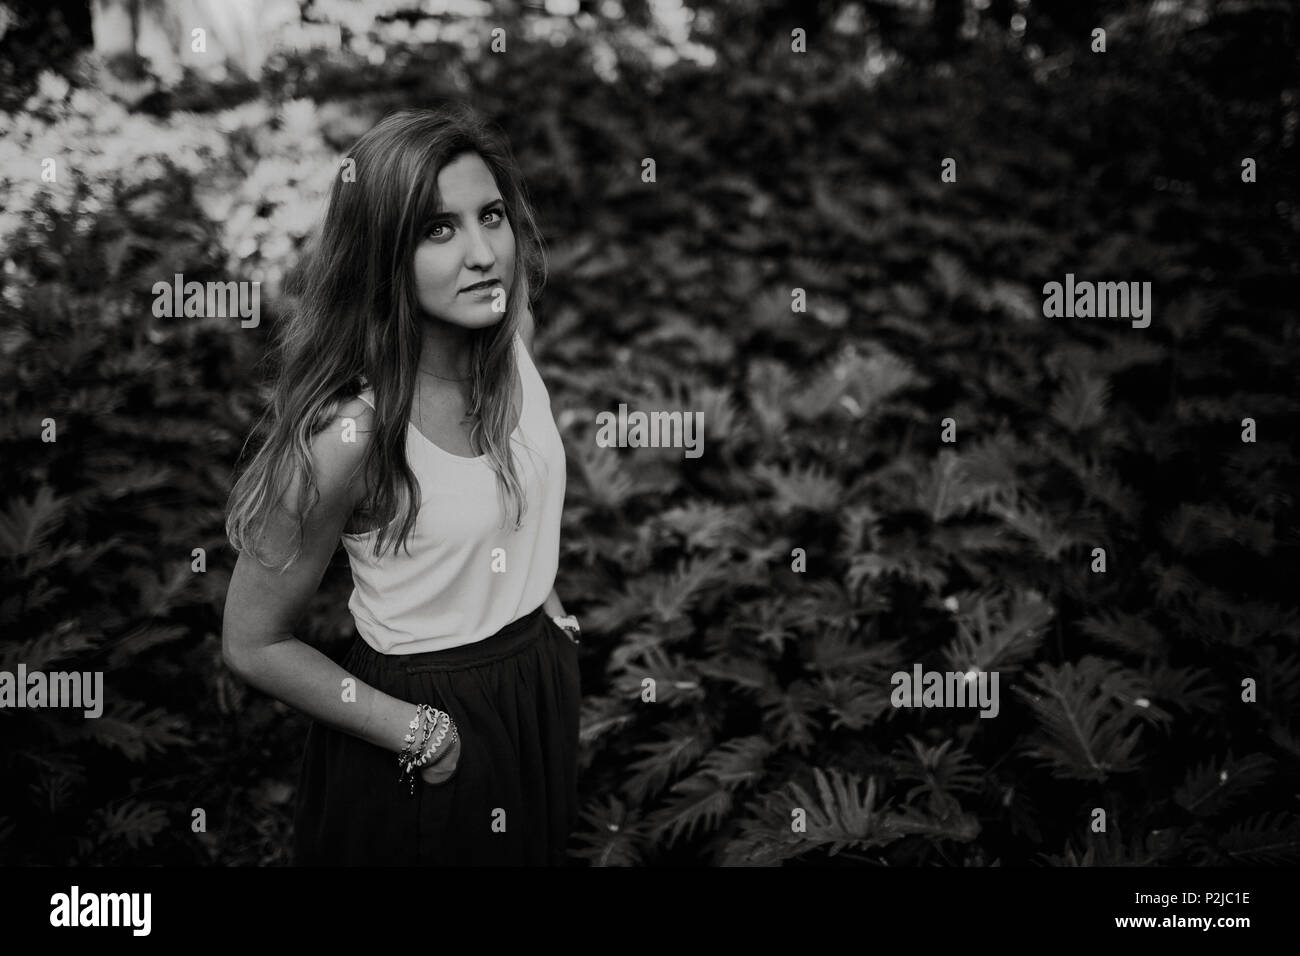 Black and white portrait of young blonde woman standing between plants in the forest